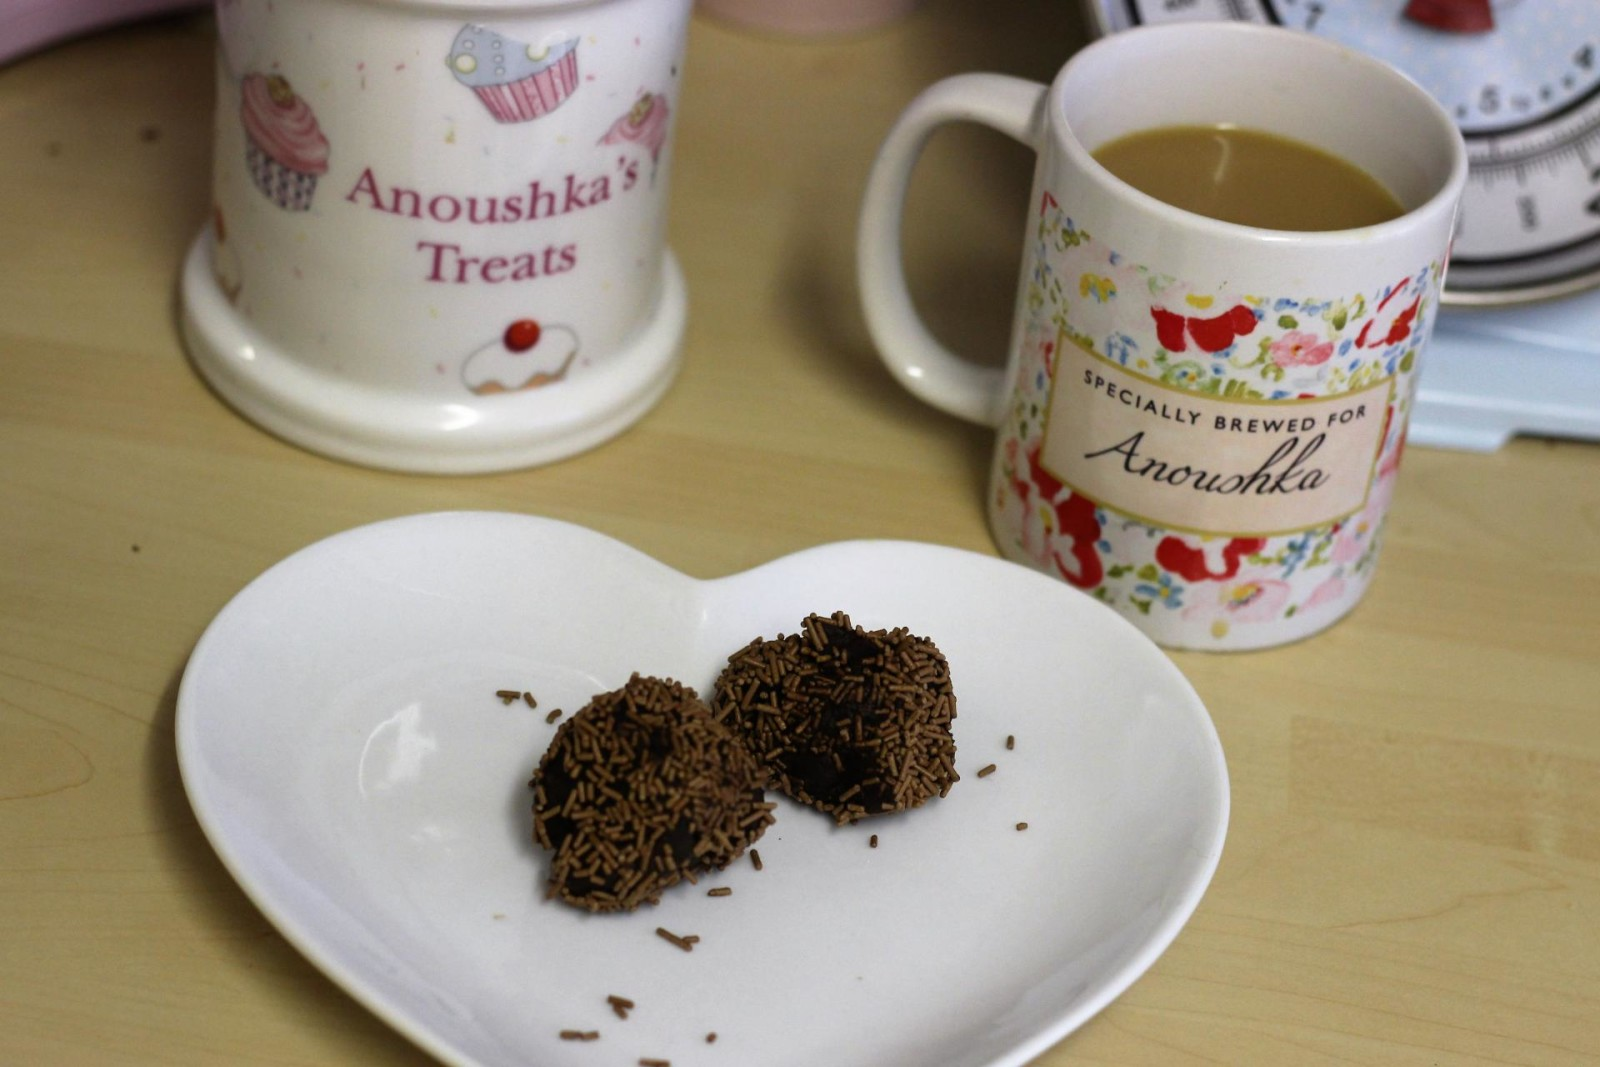 Anoushka's Treats - Rum Truffles Recipe